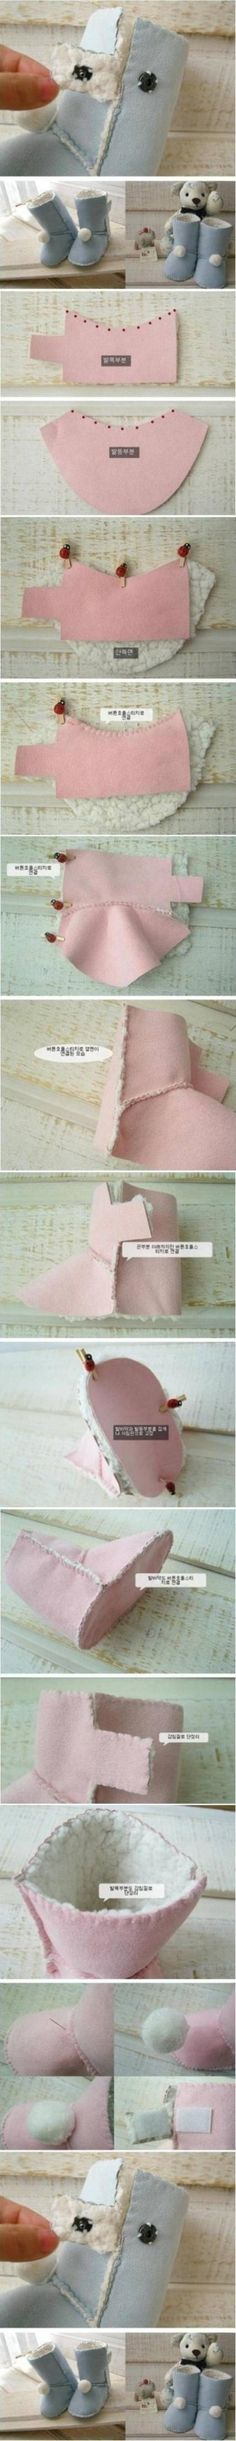 How to design and sew Kids Ugg Boots step by step DIY tutorial instructions , How to, how to do, diy instructions, crafts, do it yourself, d by Mary Smith fSesz